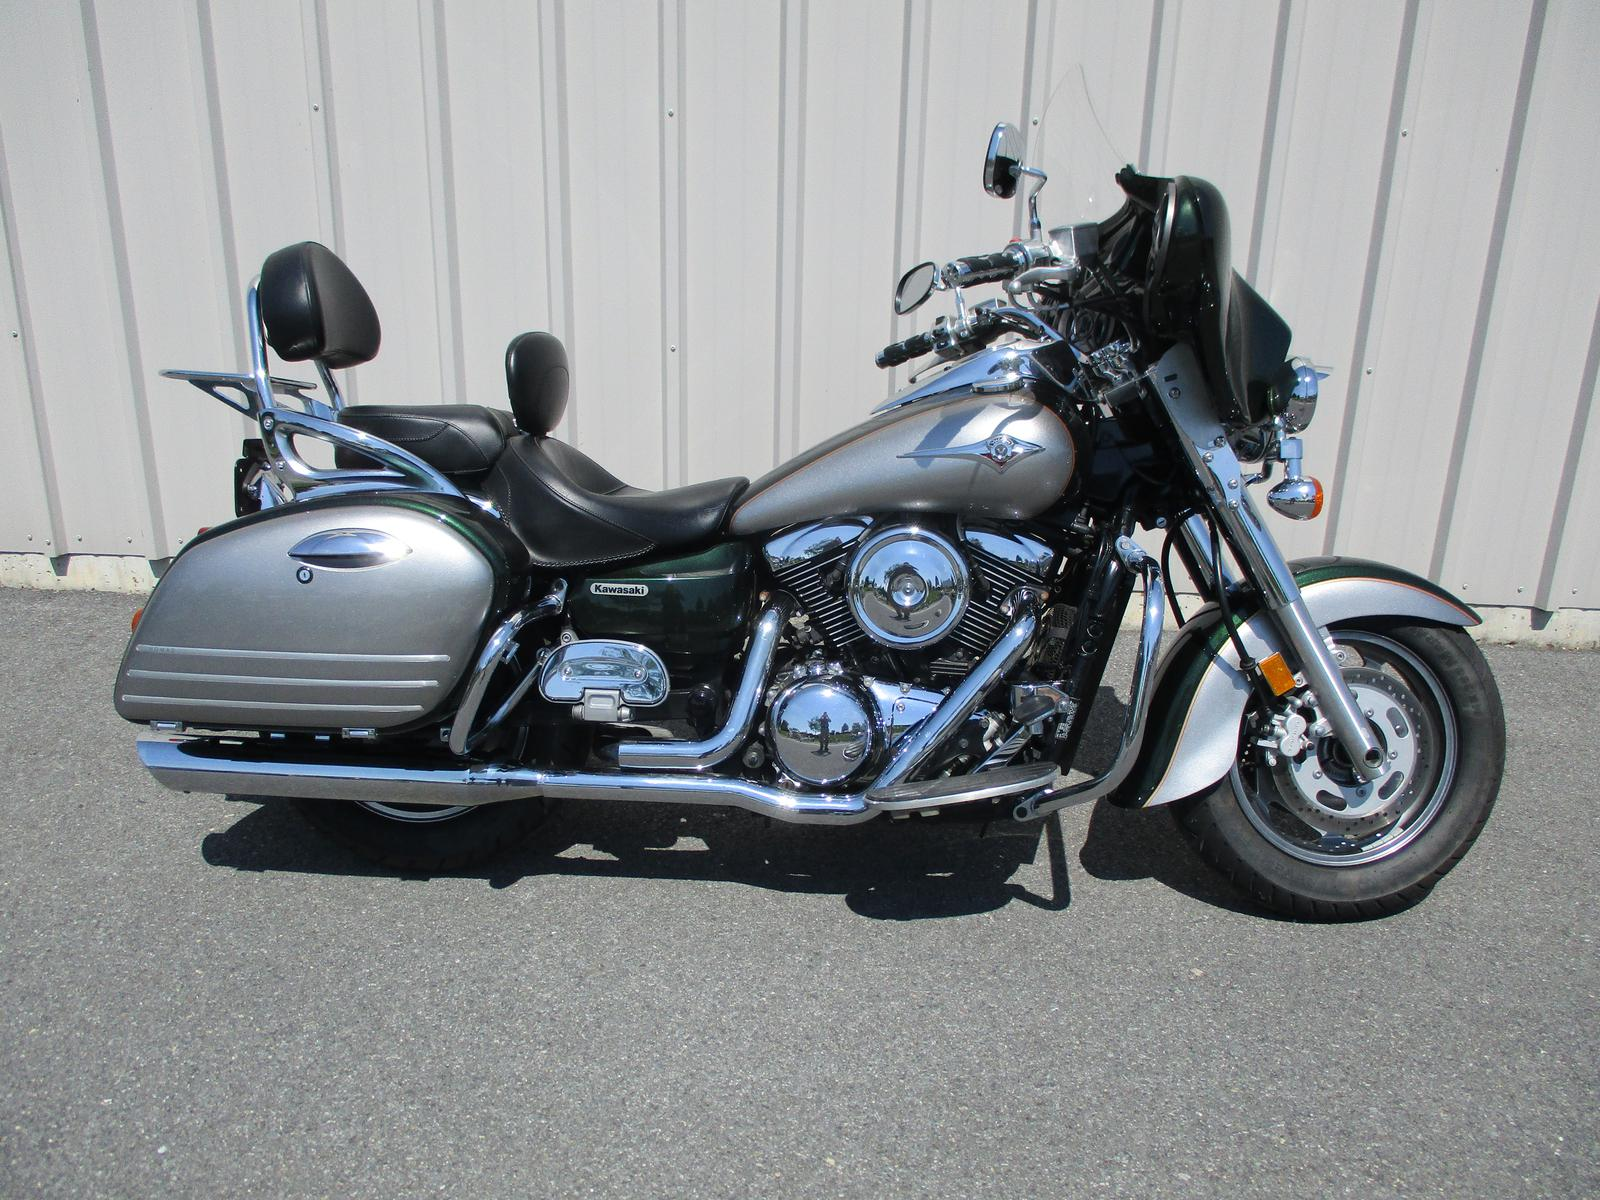 2006 Kawasaki Vulcan 1600 Nomad For Sale In Queensbury Ny Fuel Filter Sportline Power Products 518 792 4655